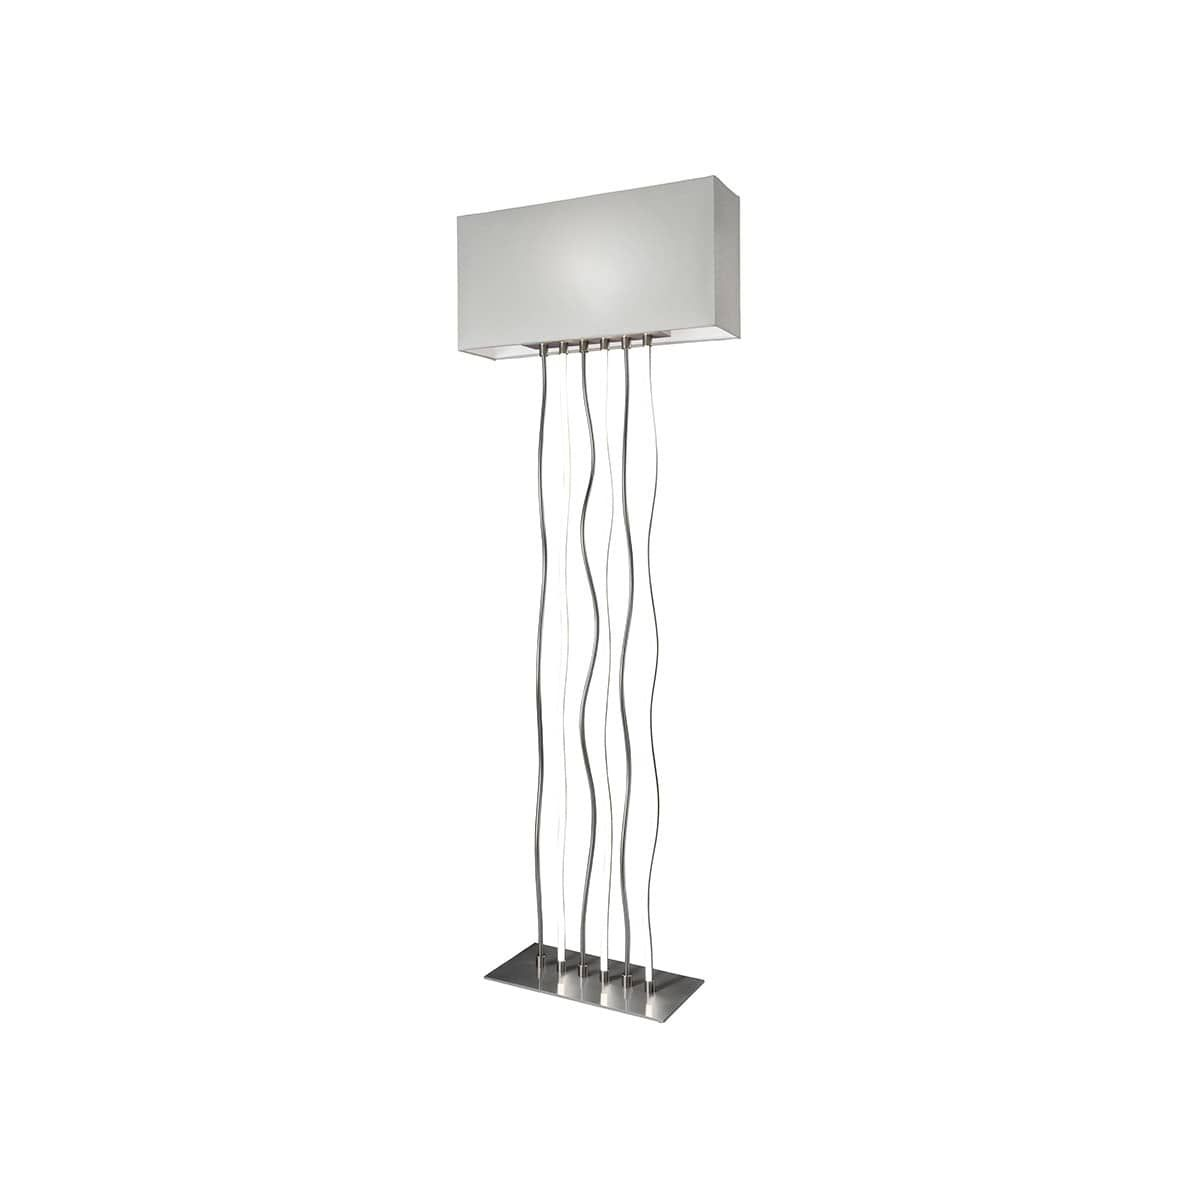 Sompex Viper Led Stehleuchte Metall Textil Weiss Led